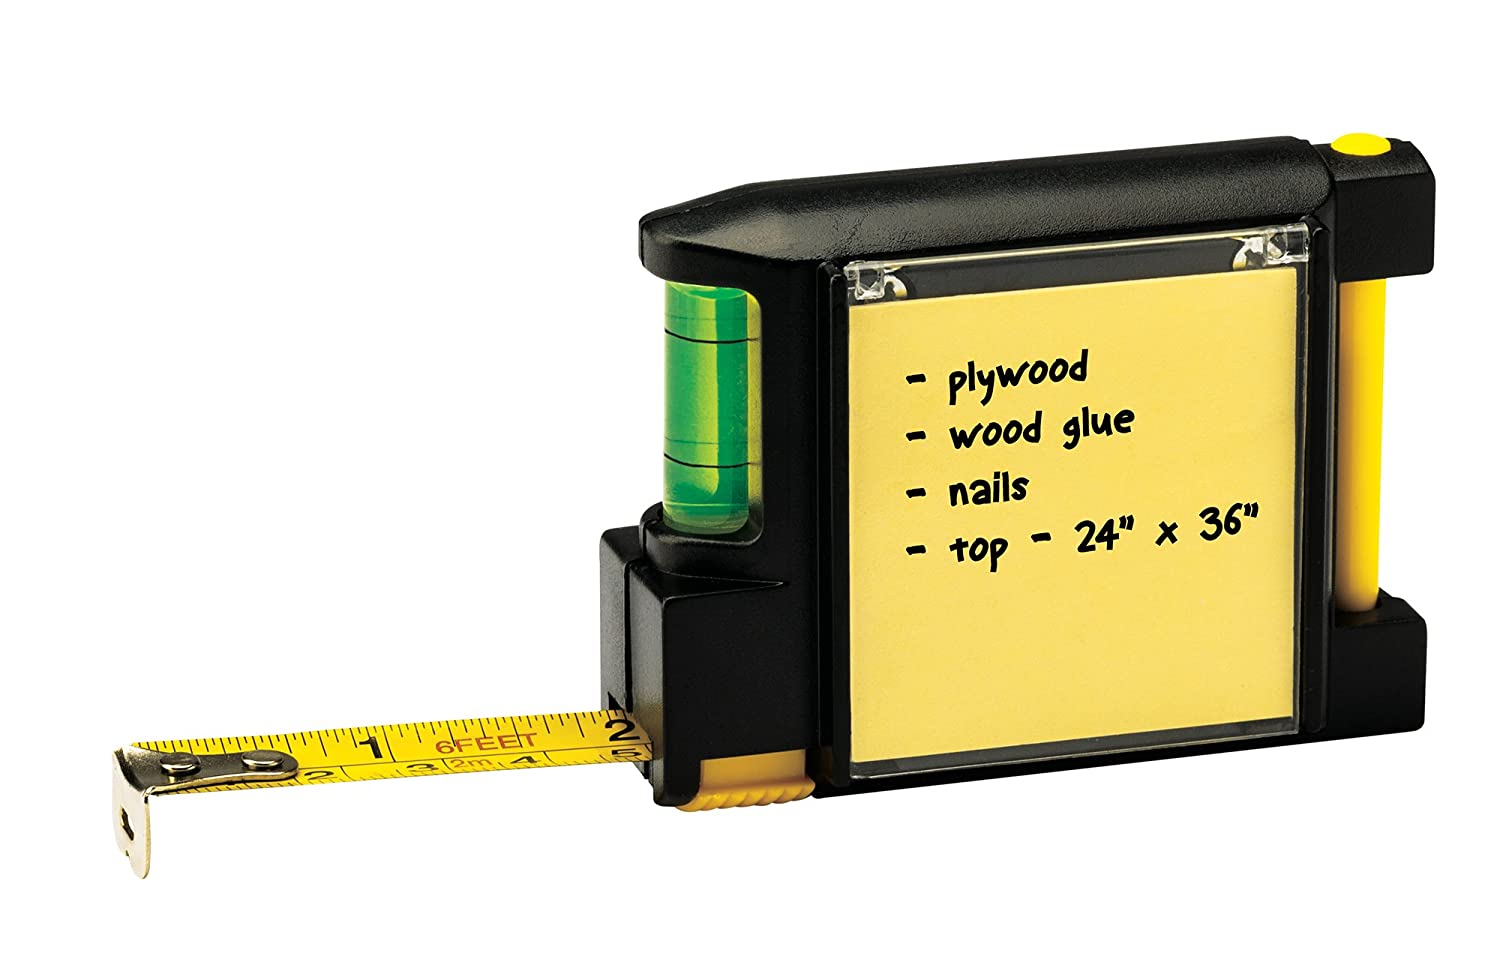 Compact Retractable Tape Measure with Notepad and Level The Paragon 66809